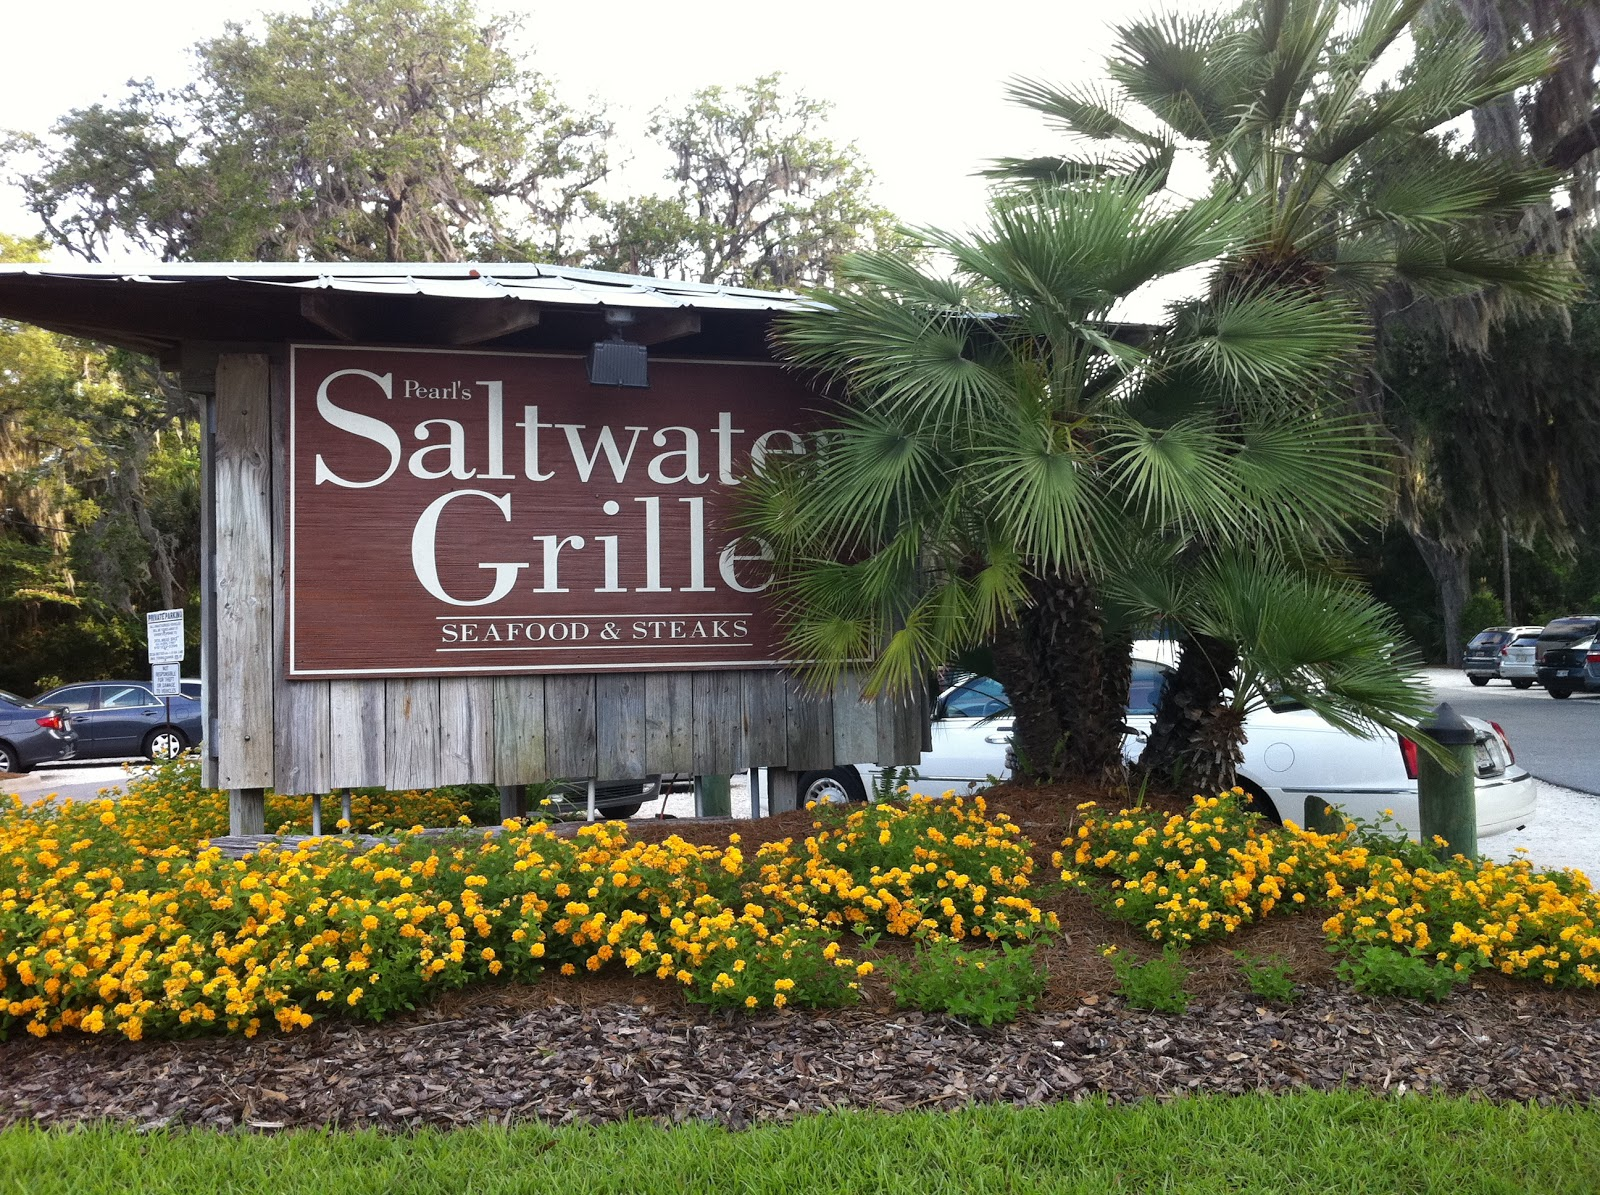 Review Pearl S Saltwater Grill Savannah Ga The Dish